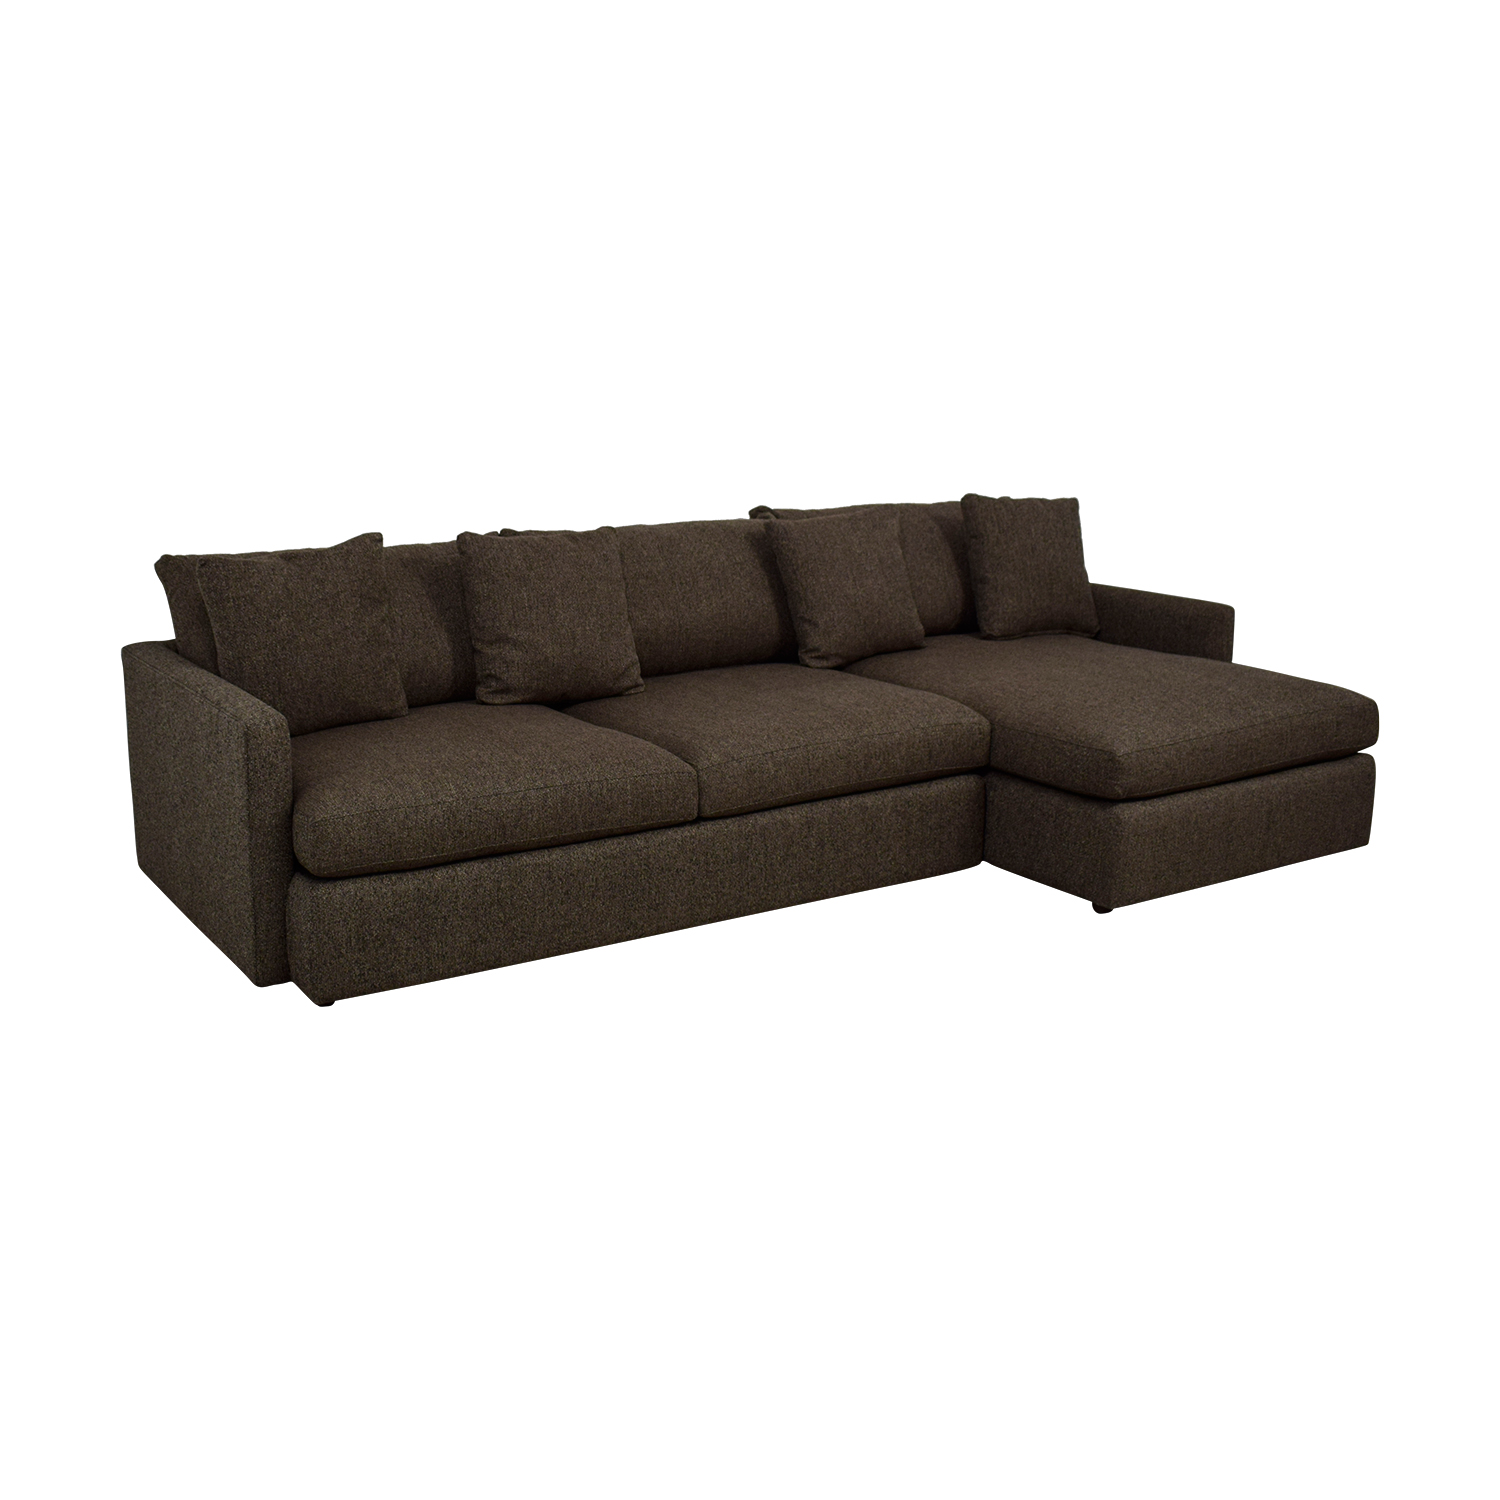 62% OFF - Crate & Barrel Crate & Barrel Lounge II Grey Chaise Sectional /  Sofas